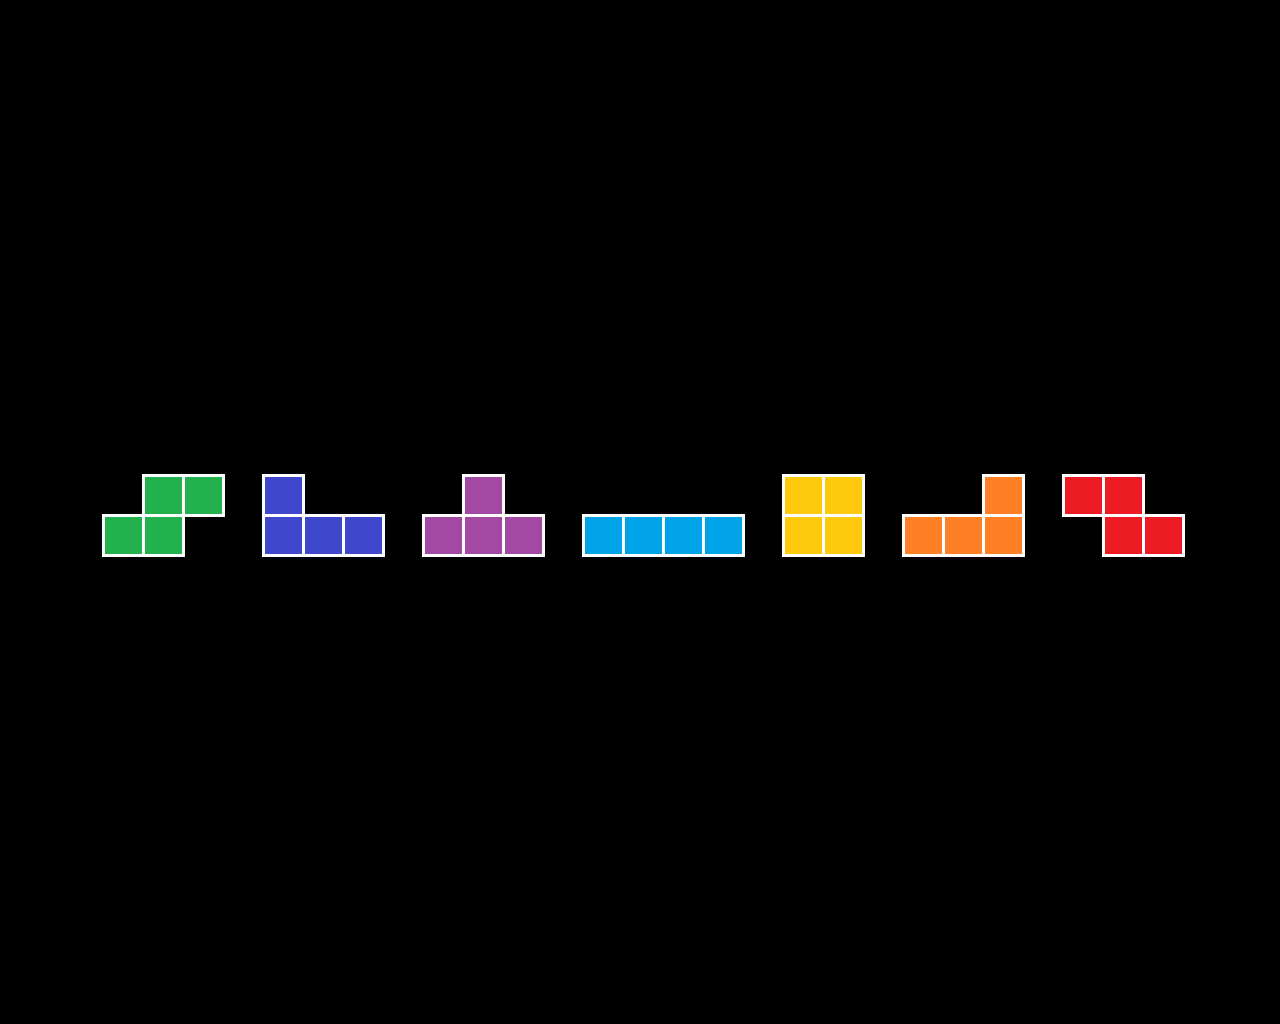 ... Tetris Wallpaper ...